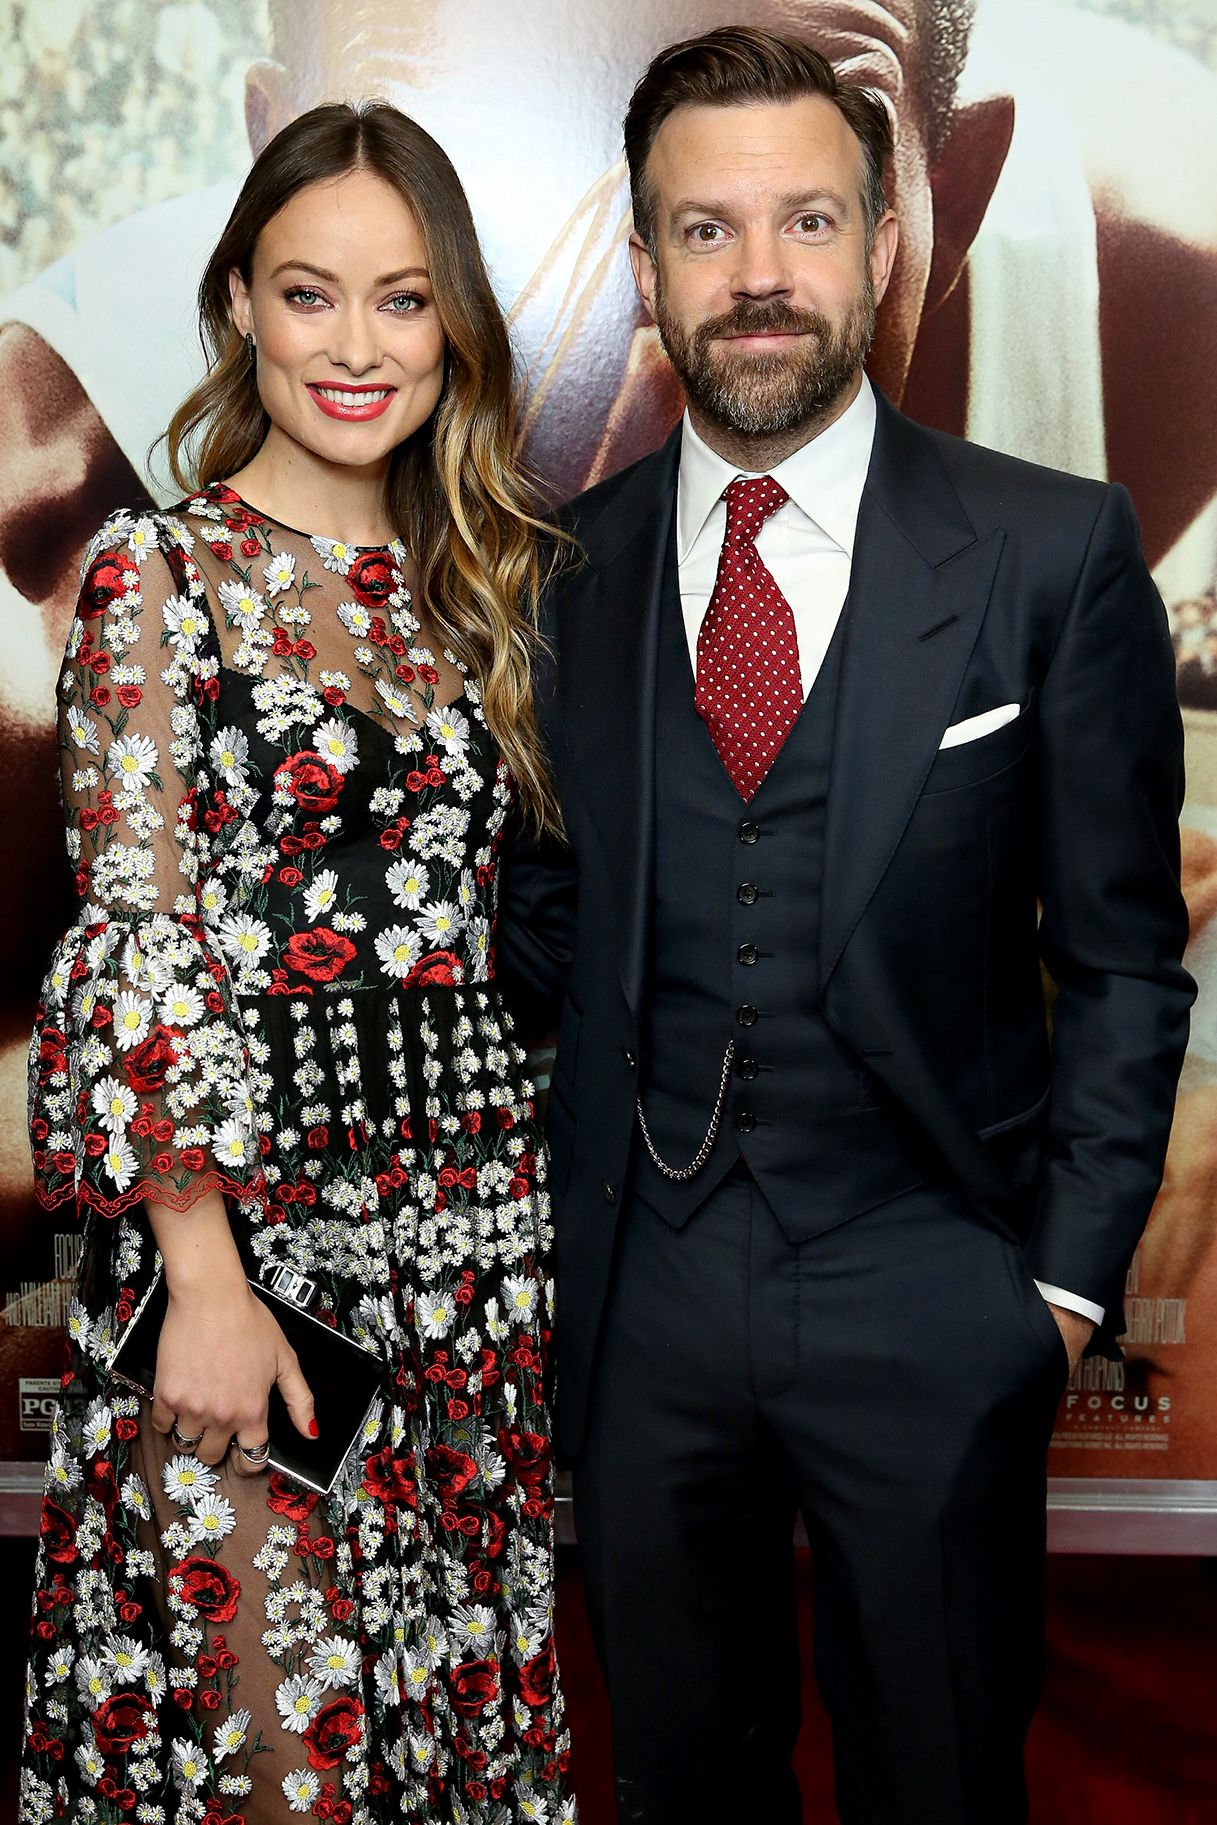 Are Olivia Wilde And Jason Sudeikis Ever Going To Get Married Jason Sudeikis Olivia Wilde Olivia Wilde Jason Sudeikis